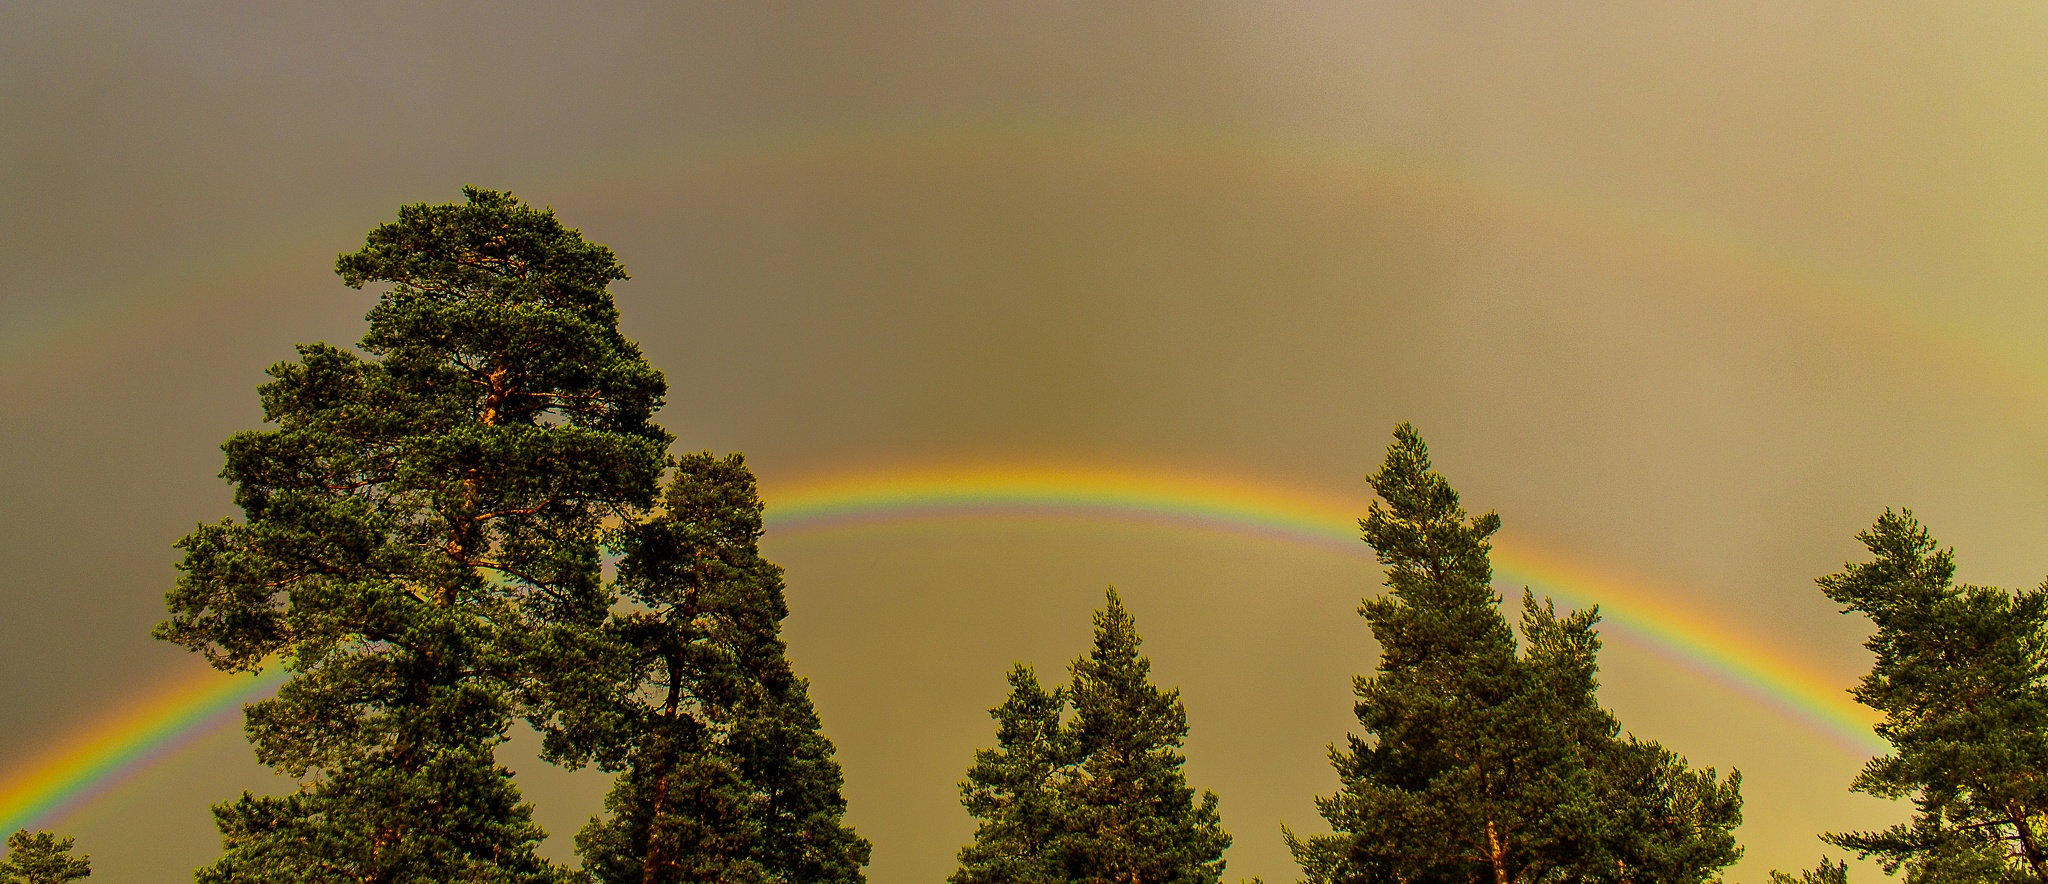 Double Rainbow by Carl Hult